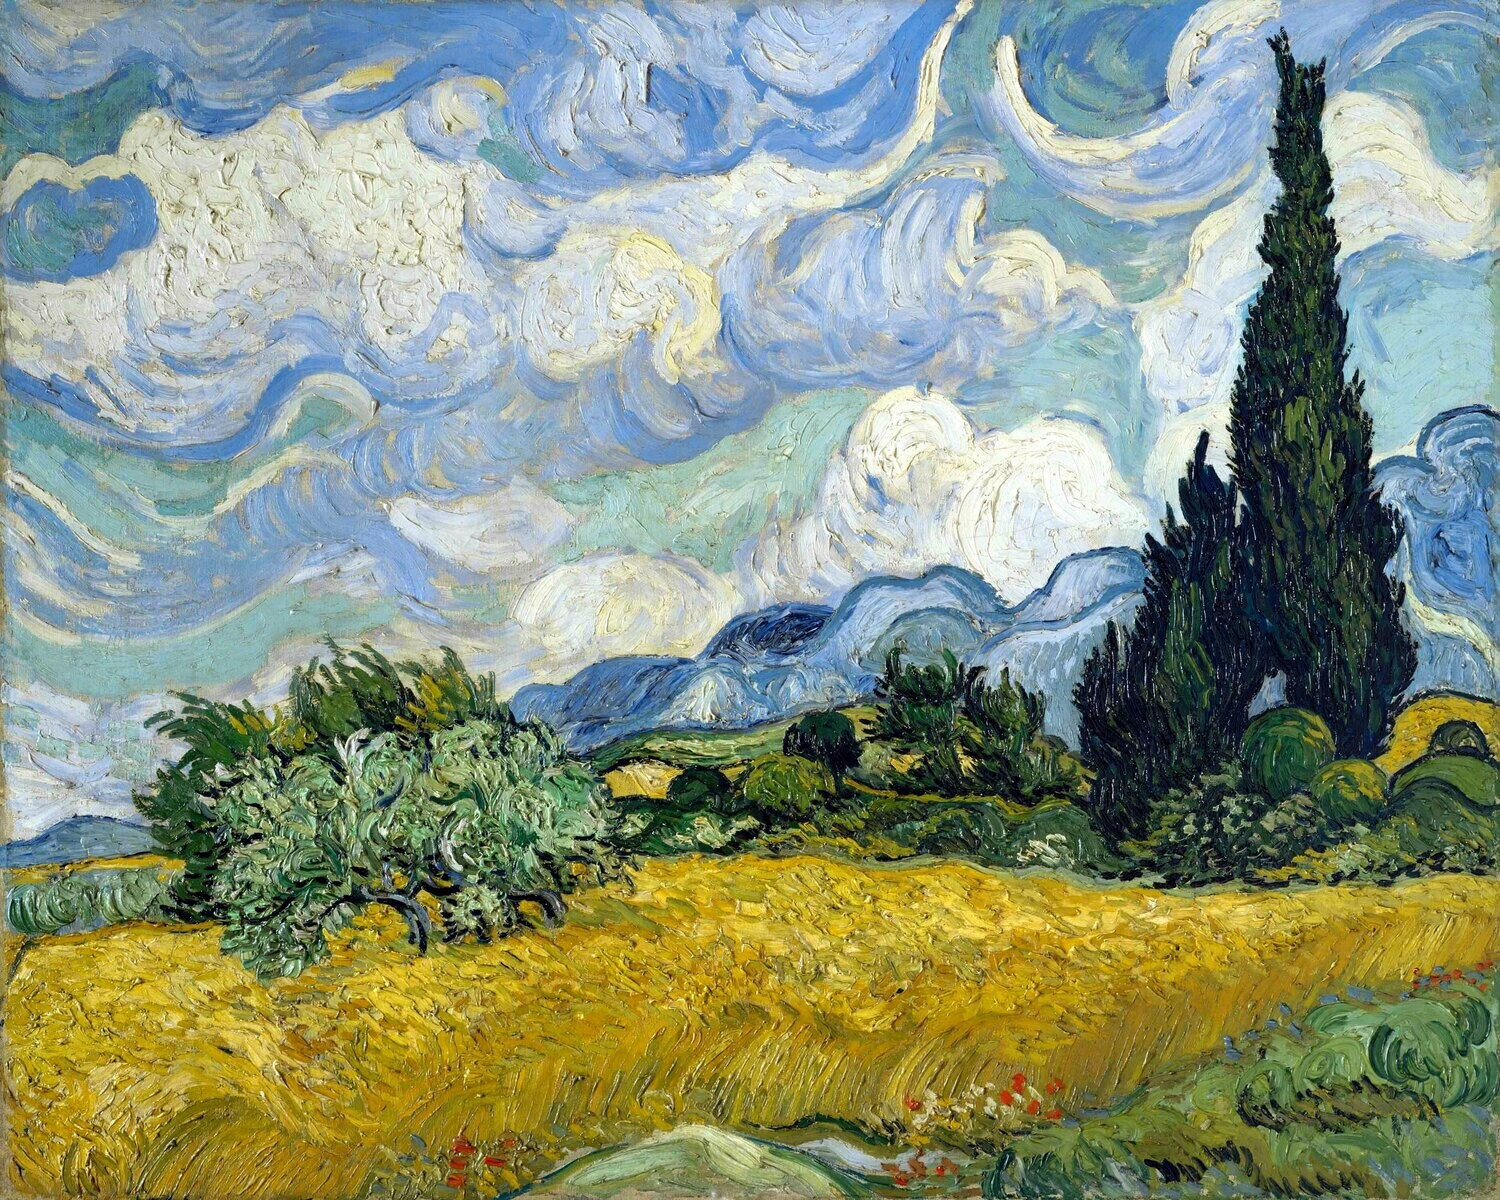 Vincent van Gogh | Wheat Field with Cypresses